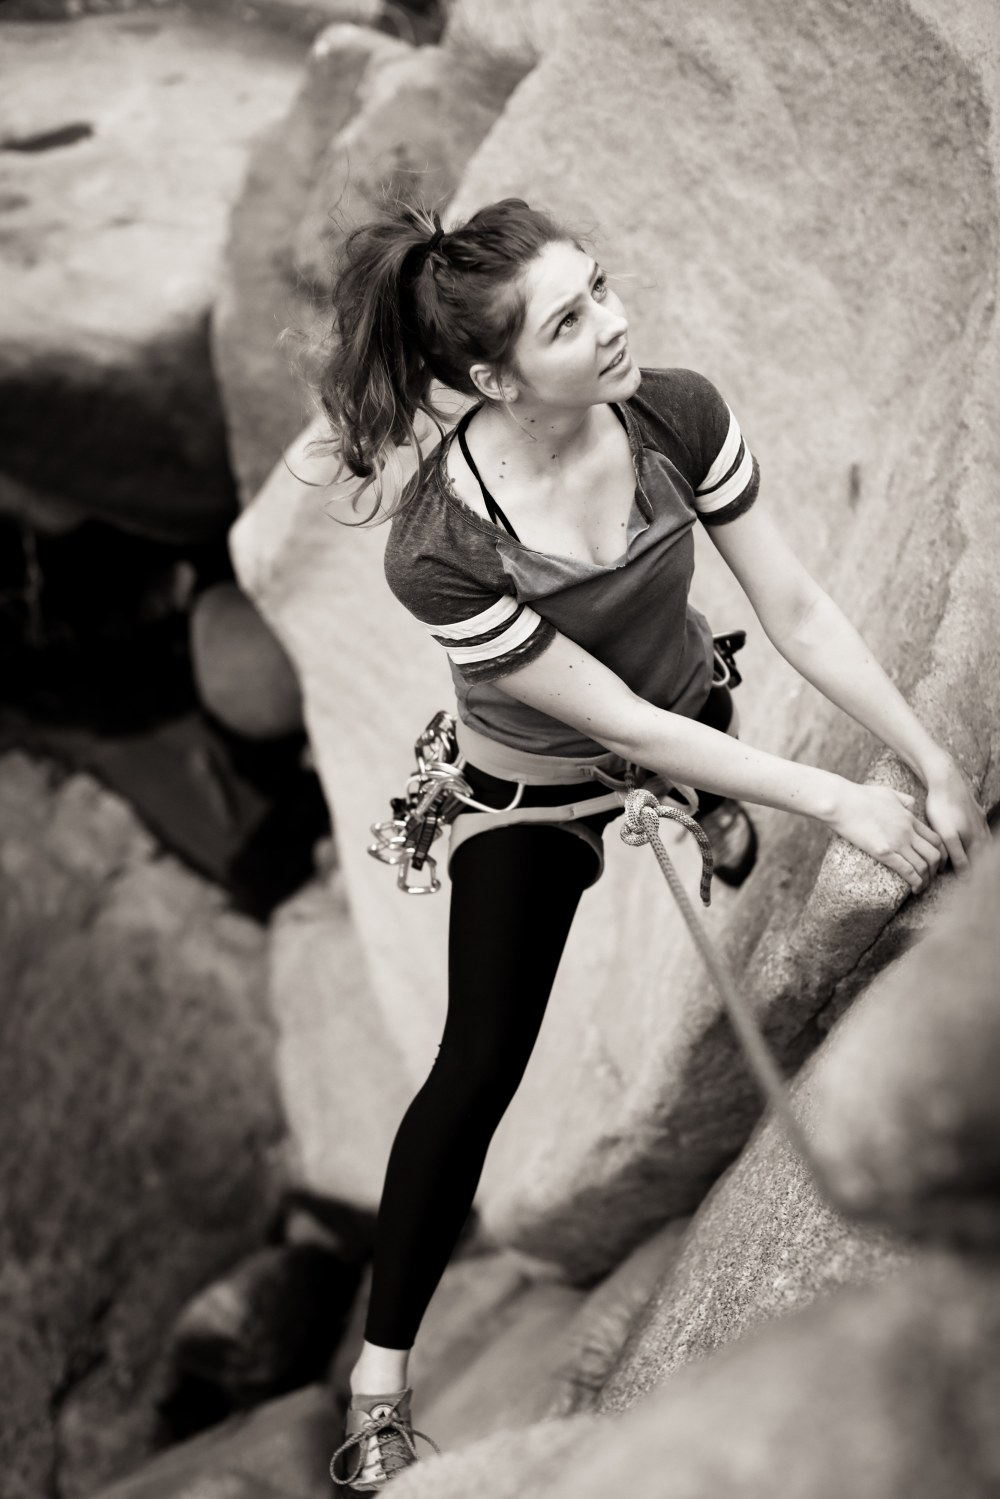 highland_highschool_senior_portraits_bakersfield_ca_kern_river_rock_climbing_tierra_by_cassia_karin_photography_favorites-26